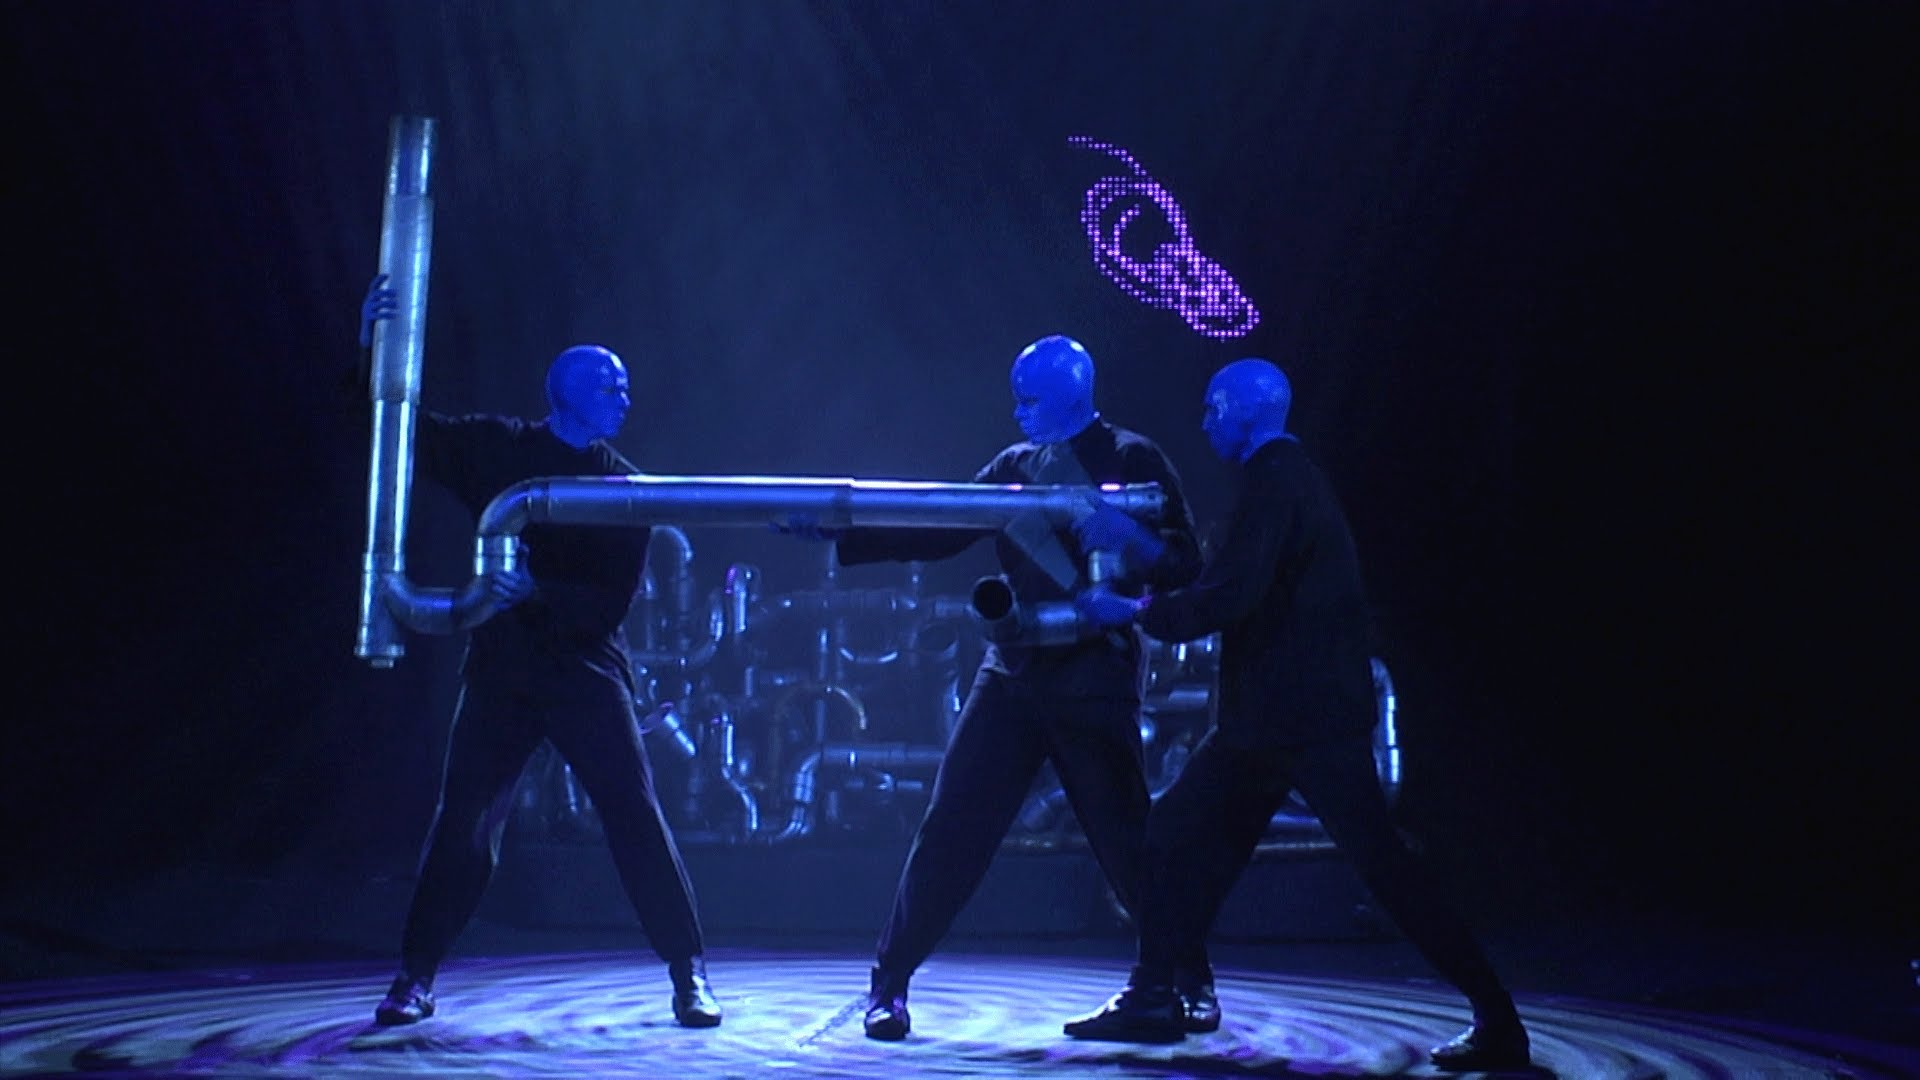 Download Blue Man Group Wallpaper Gallery